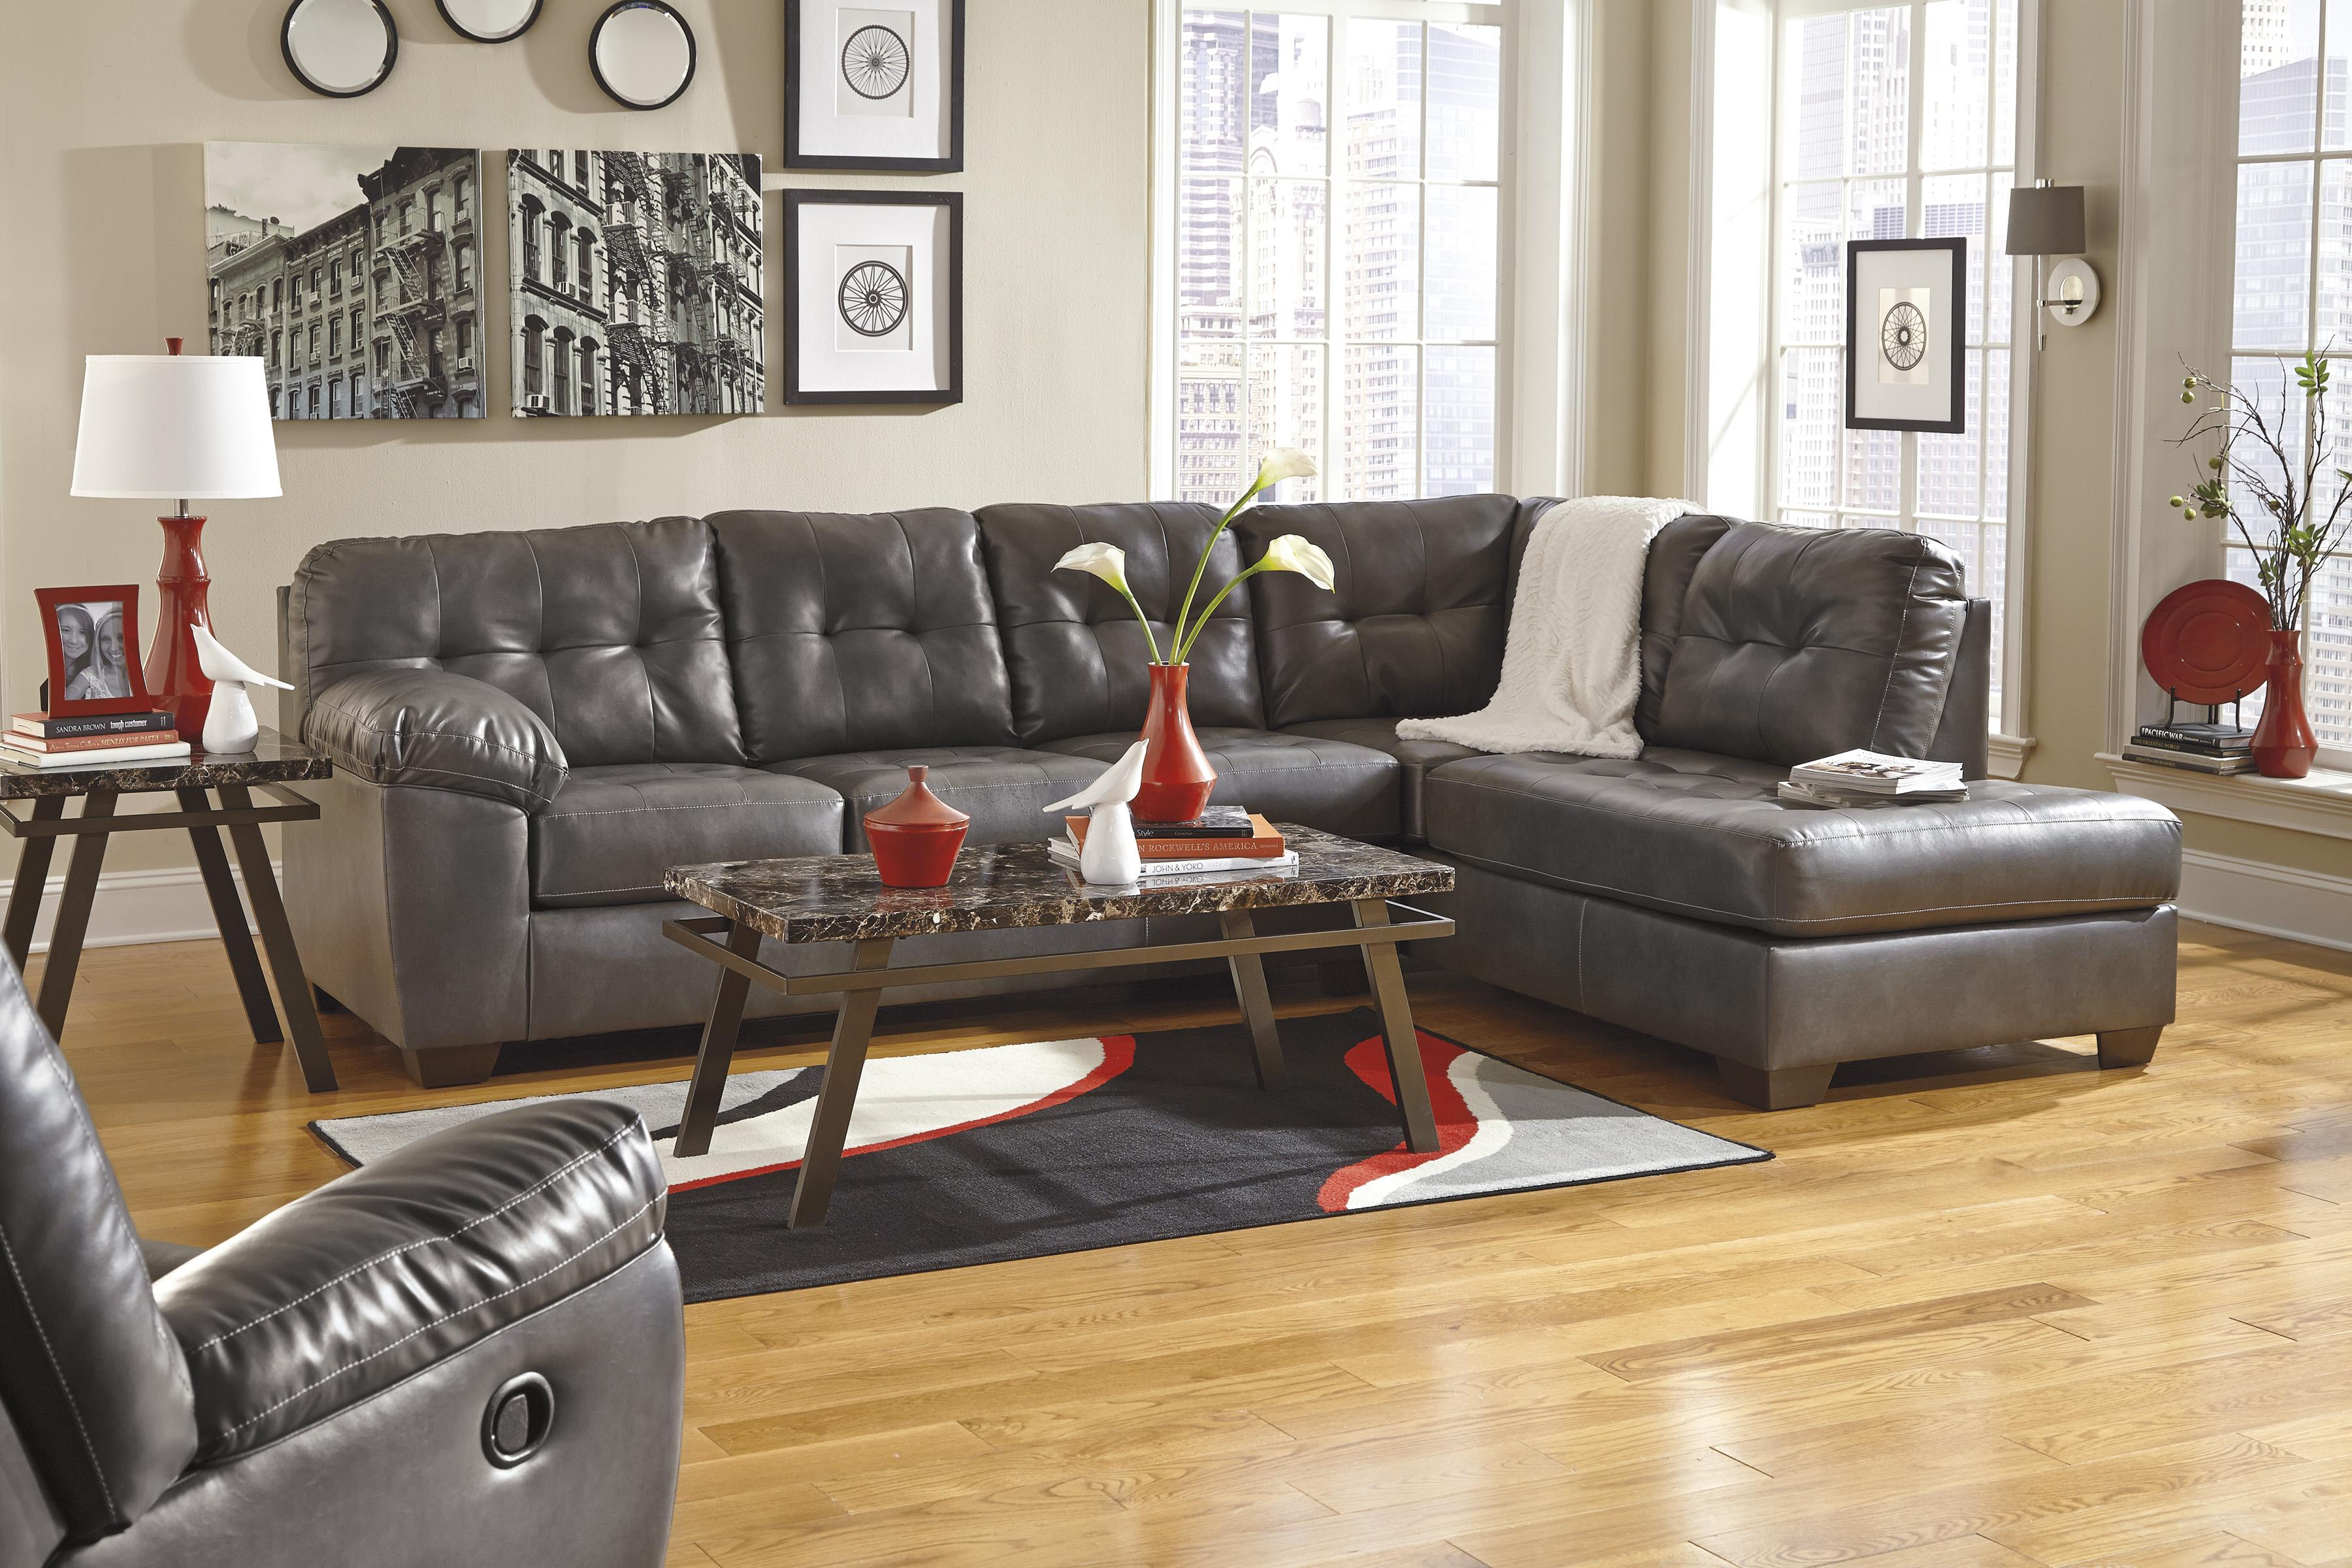 Faux Leather Sectional w/ Right Chaise : faux leather sectionals - Sectionals, Sofas & Couches